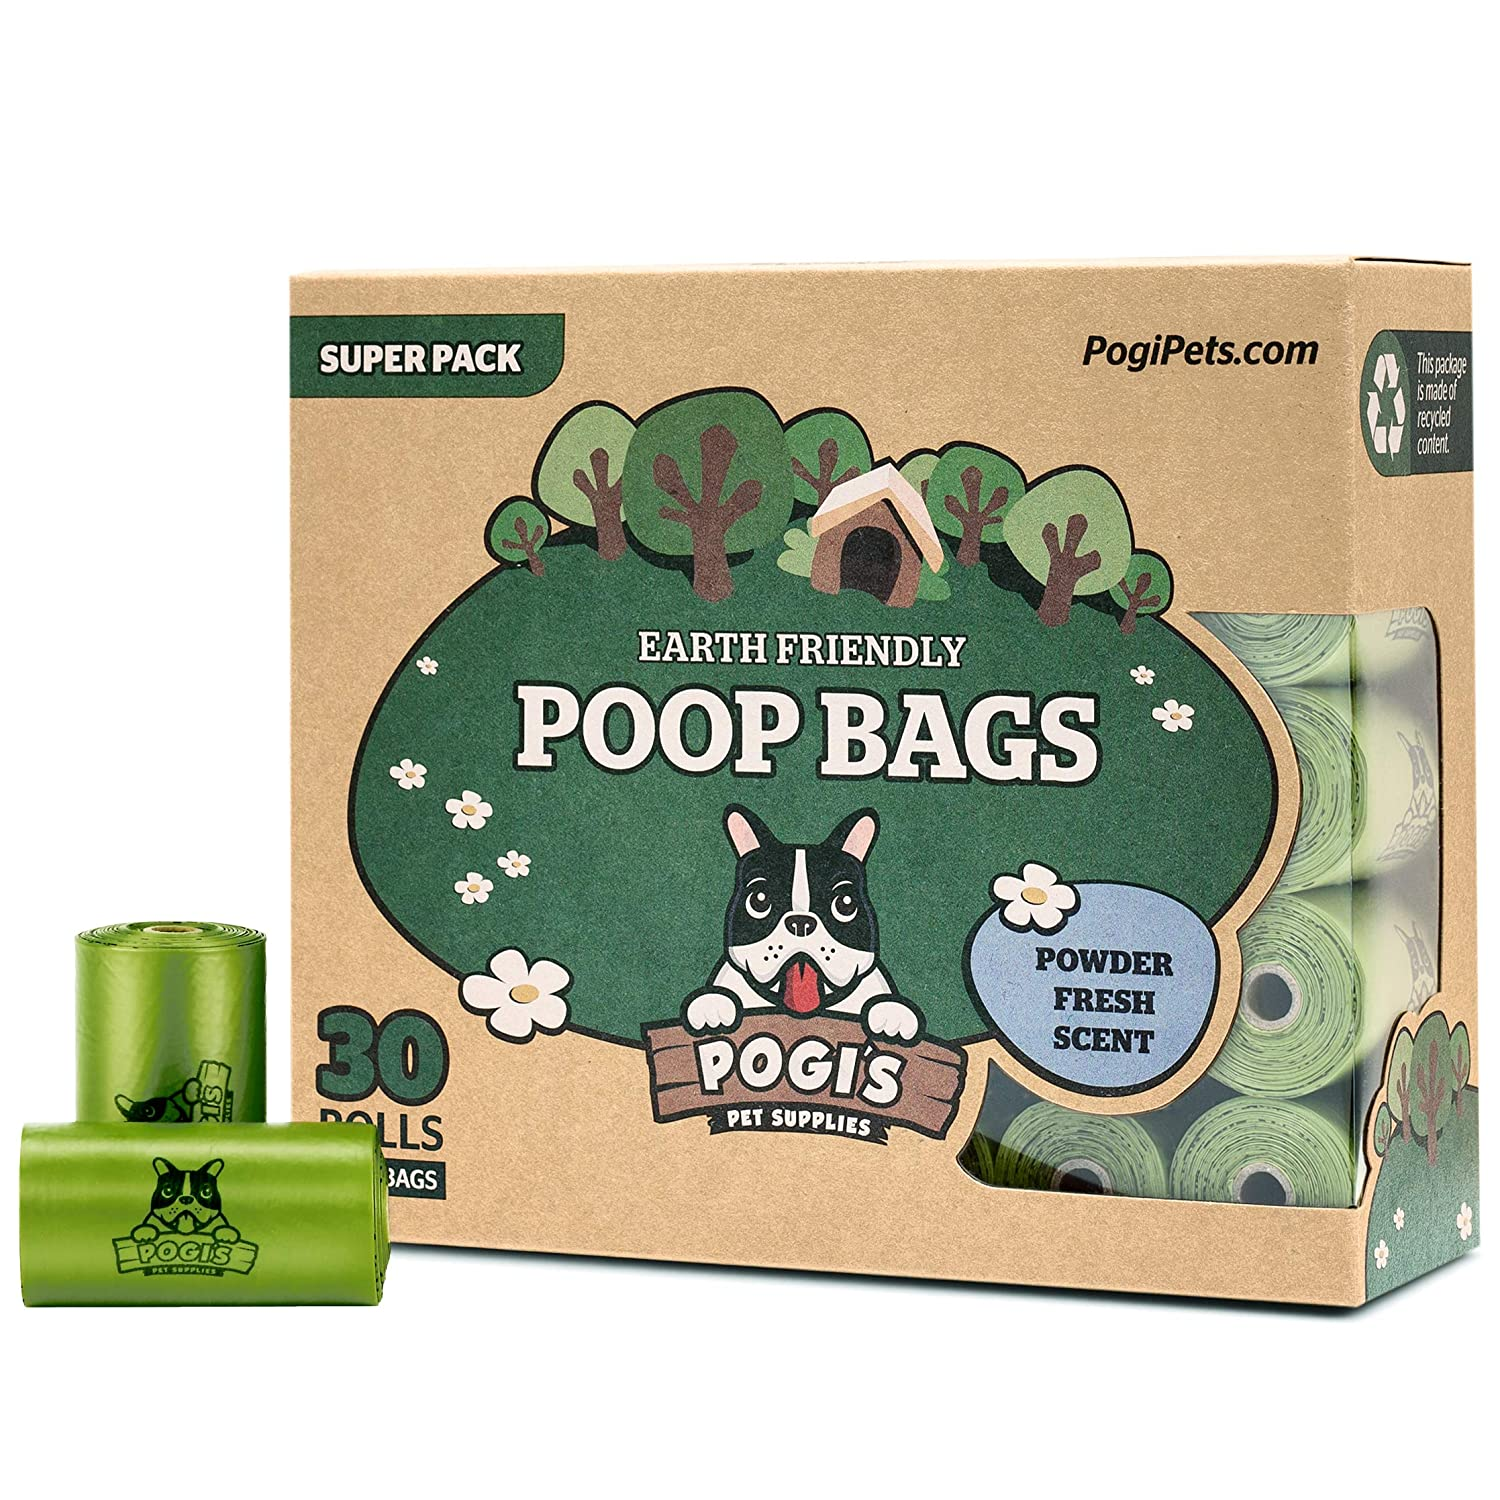 450 Bags 30 Rolls Scented Pogis Poop Bags Biodegradable Leak-Proof Dog Poo Bags - Large